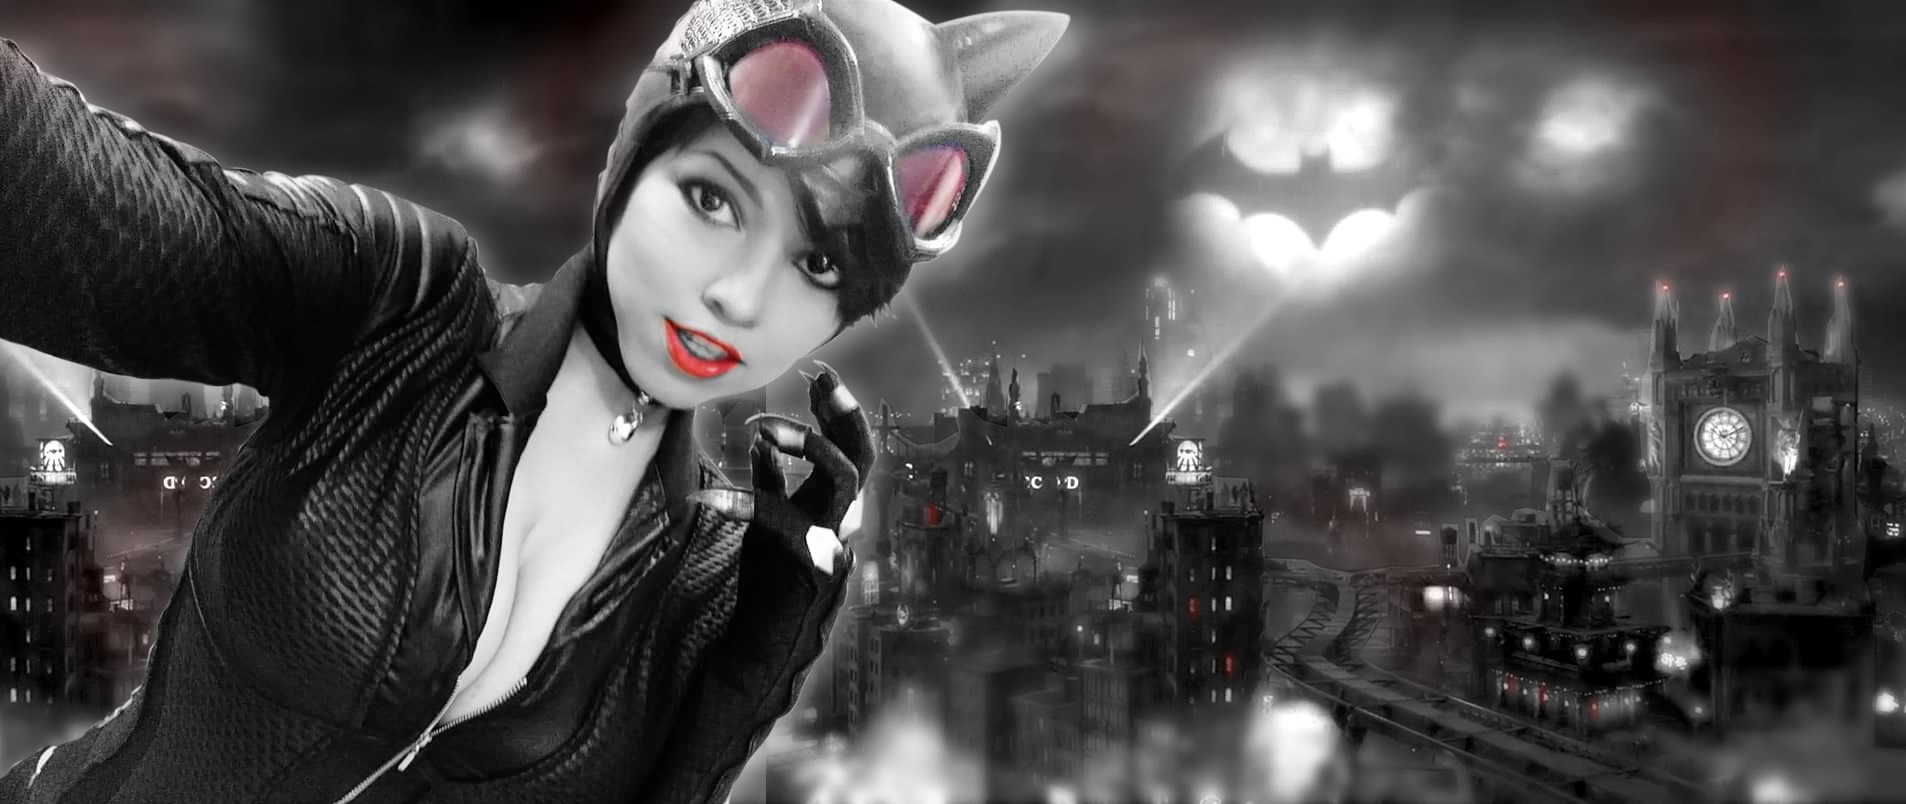 miss kyle topo - Cosplay Mulher-Gato Selina Kyle - Miss Kyle